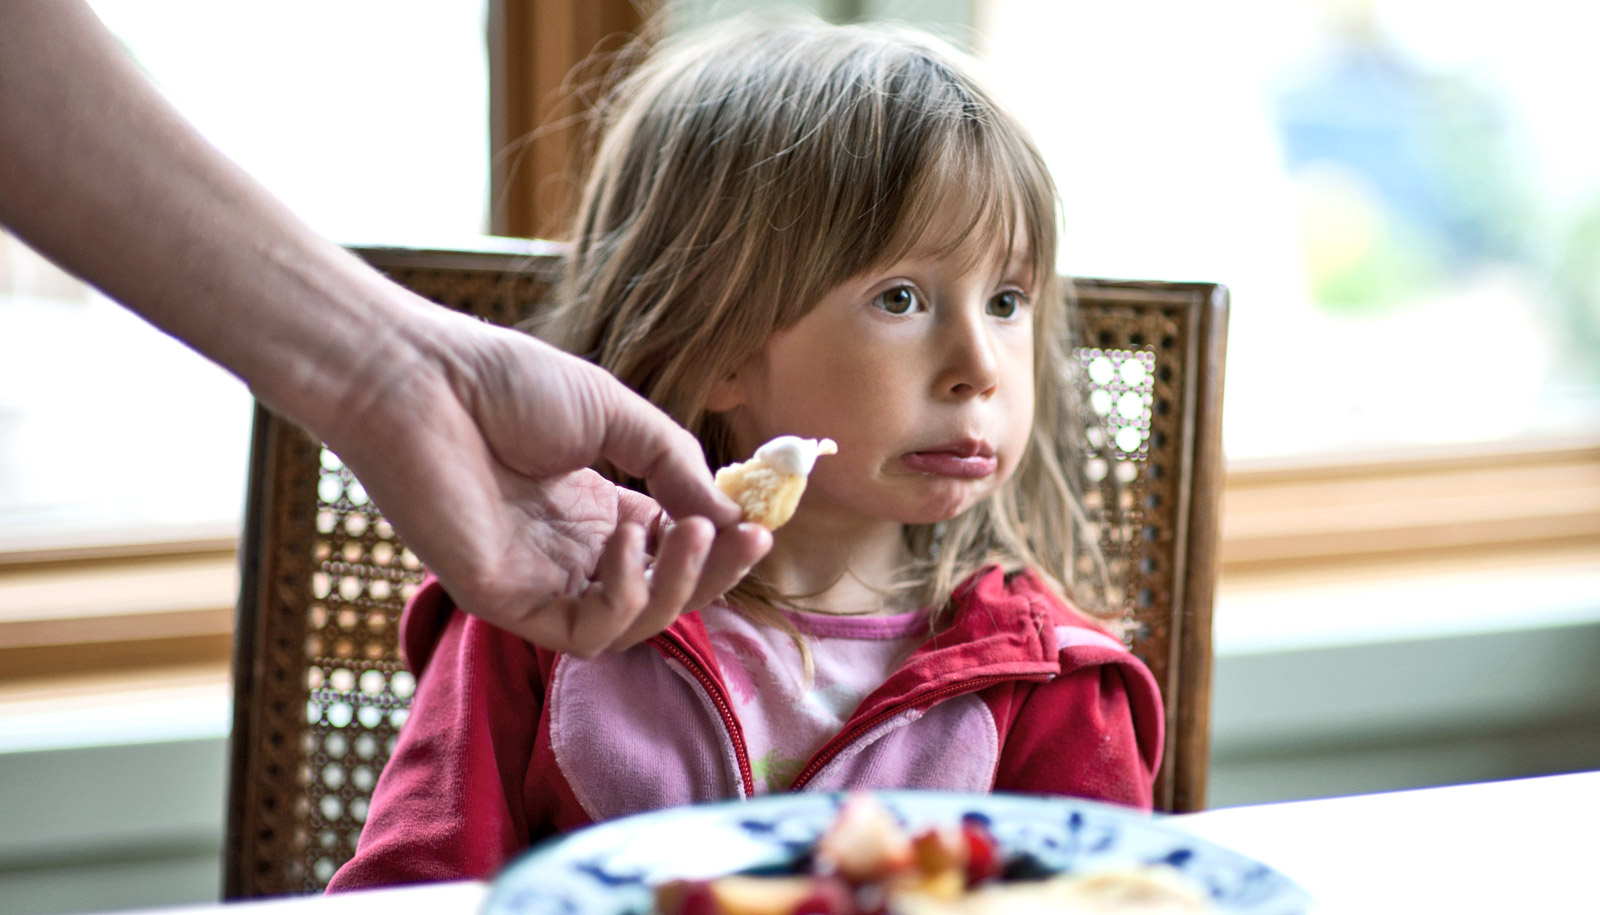 Parents Use Caution When Pushing Your >> Parents Use Caution When Pushing Your Picky Eater Futurity